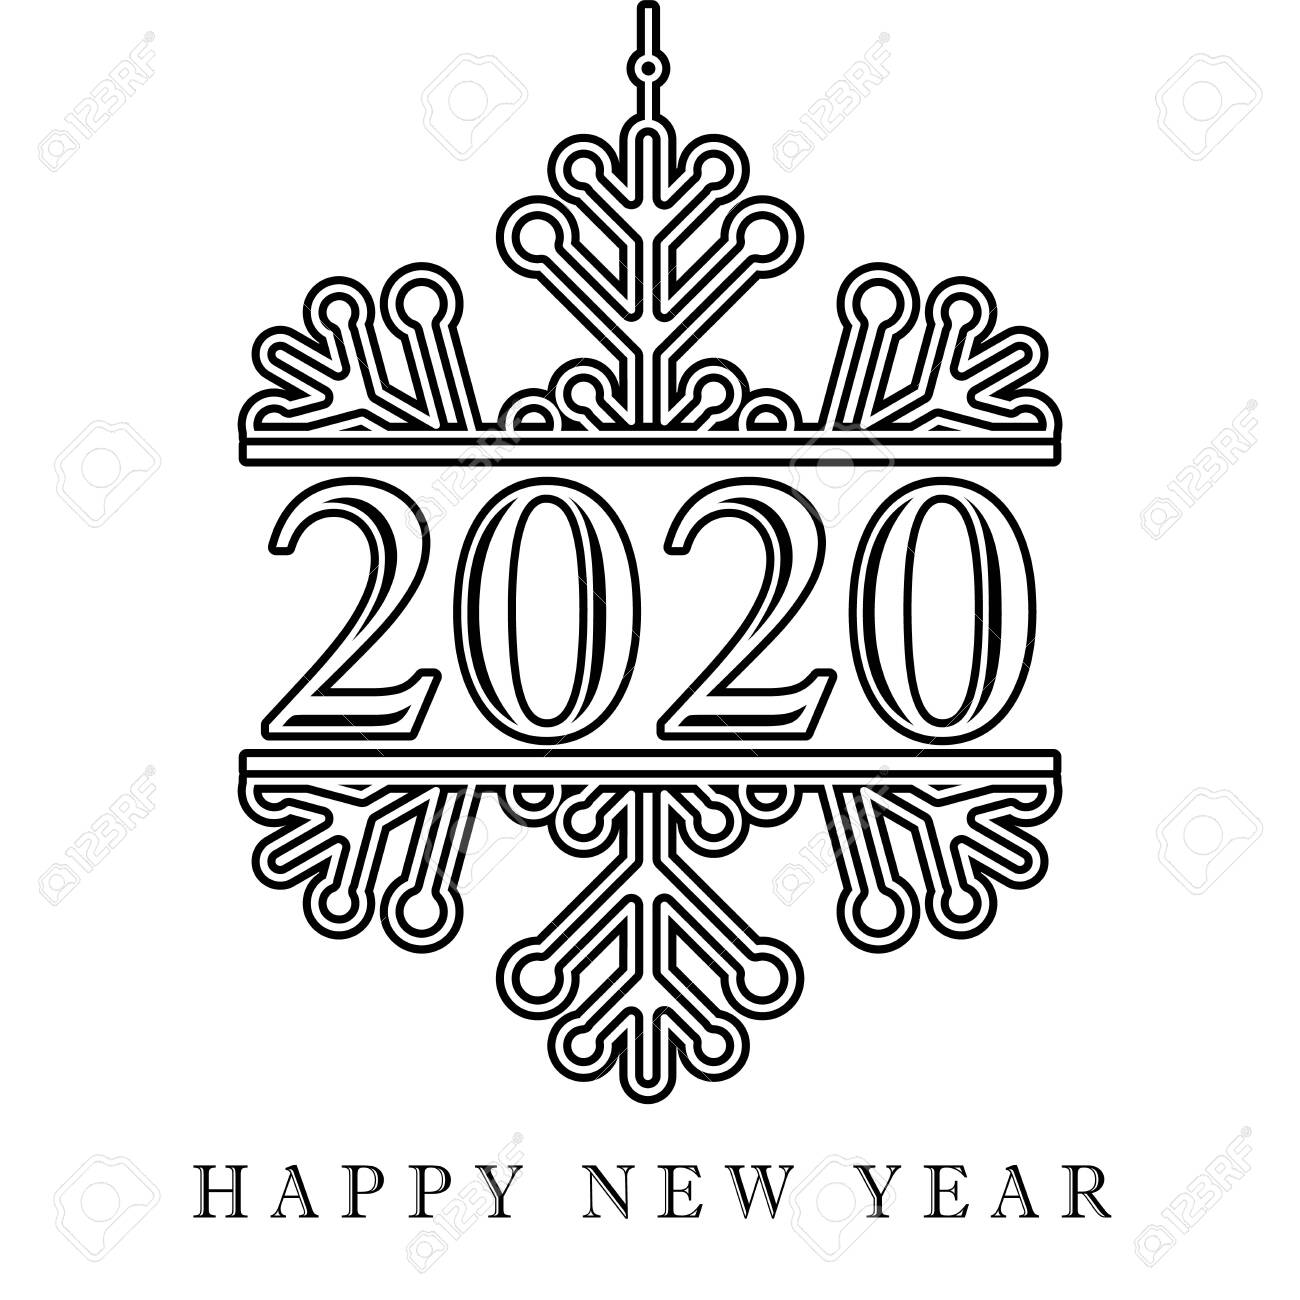 2020 black winter snow happy new year card lettering xmas greeting royalty free cliparts vectors and stock illustration image 129521196 2020 black winter snow happy new year card lettering xmas greeting